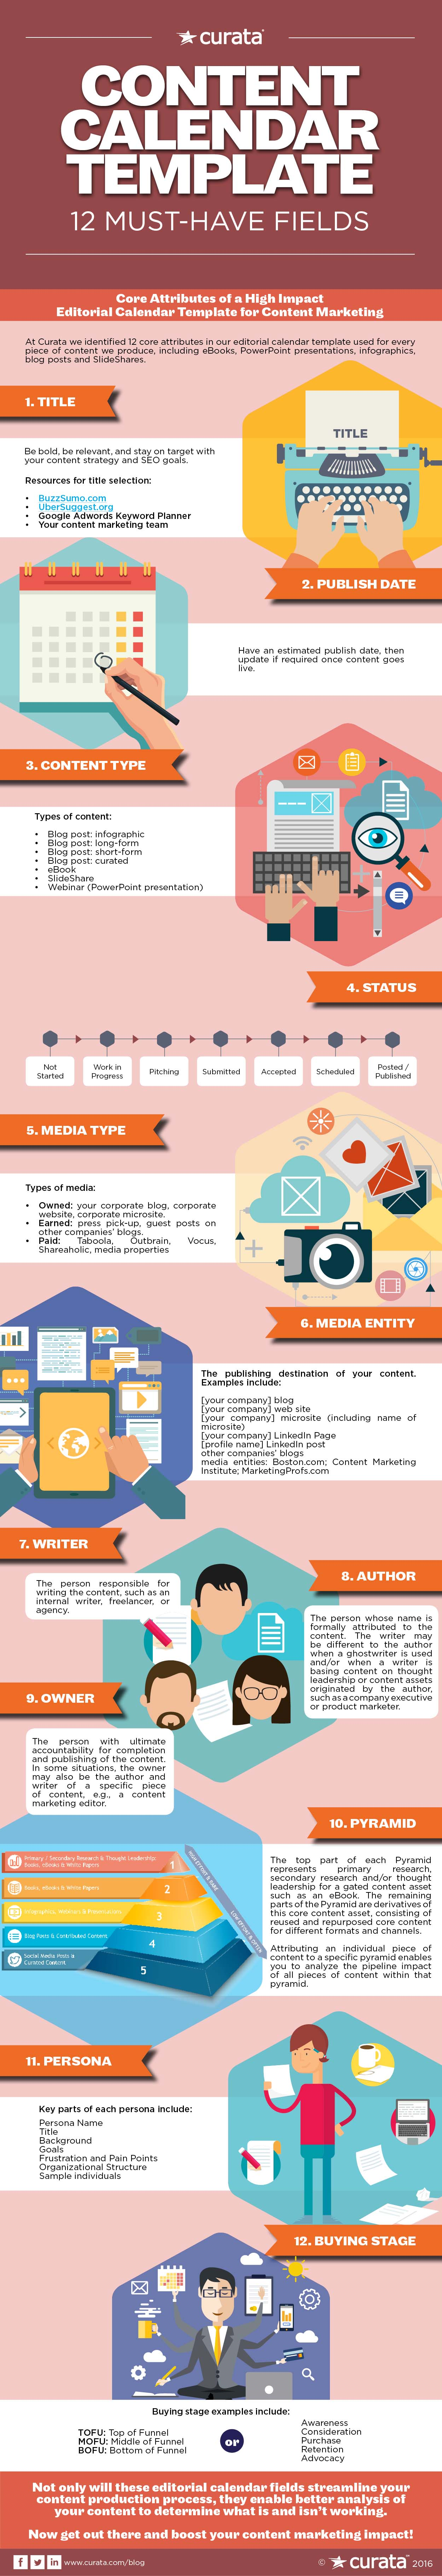 Content Marketing Calednar Infogrpahic1